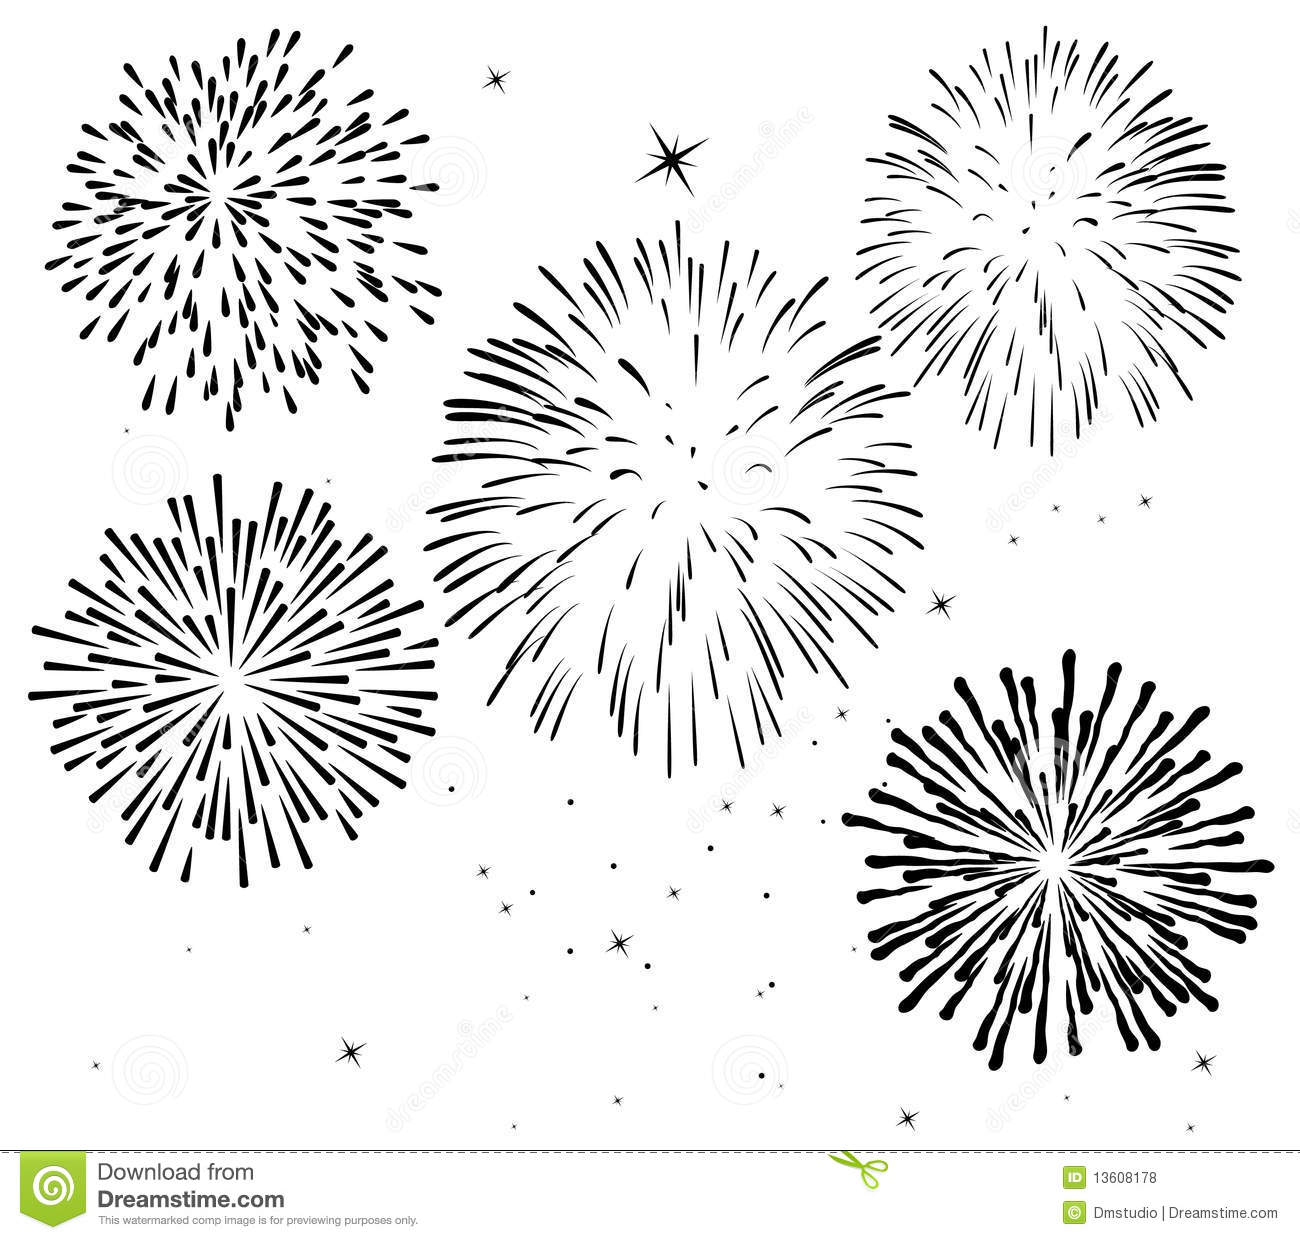 Crown Simple Shapes Coloring Pages additionally Clipart Firework 1 furthermore Fireworks rockets clipart moreover 118886 besides Simple Butterfly Graphic Pattern Coloring Page. on fireworks silhouette